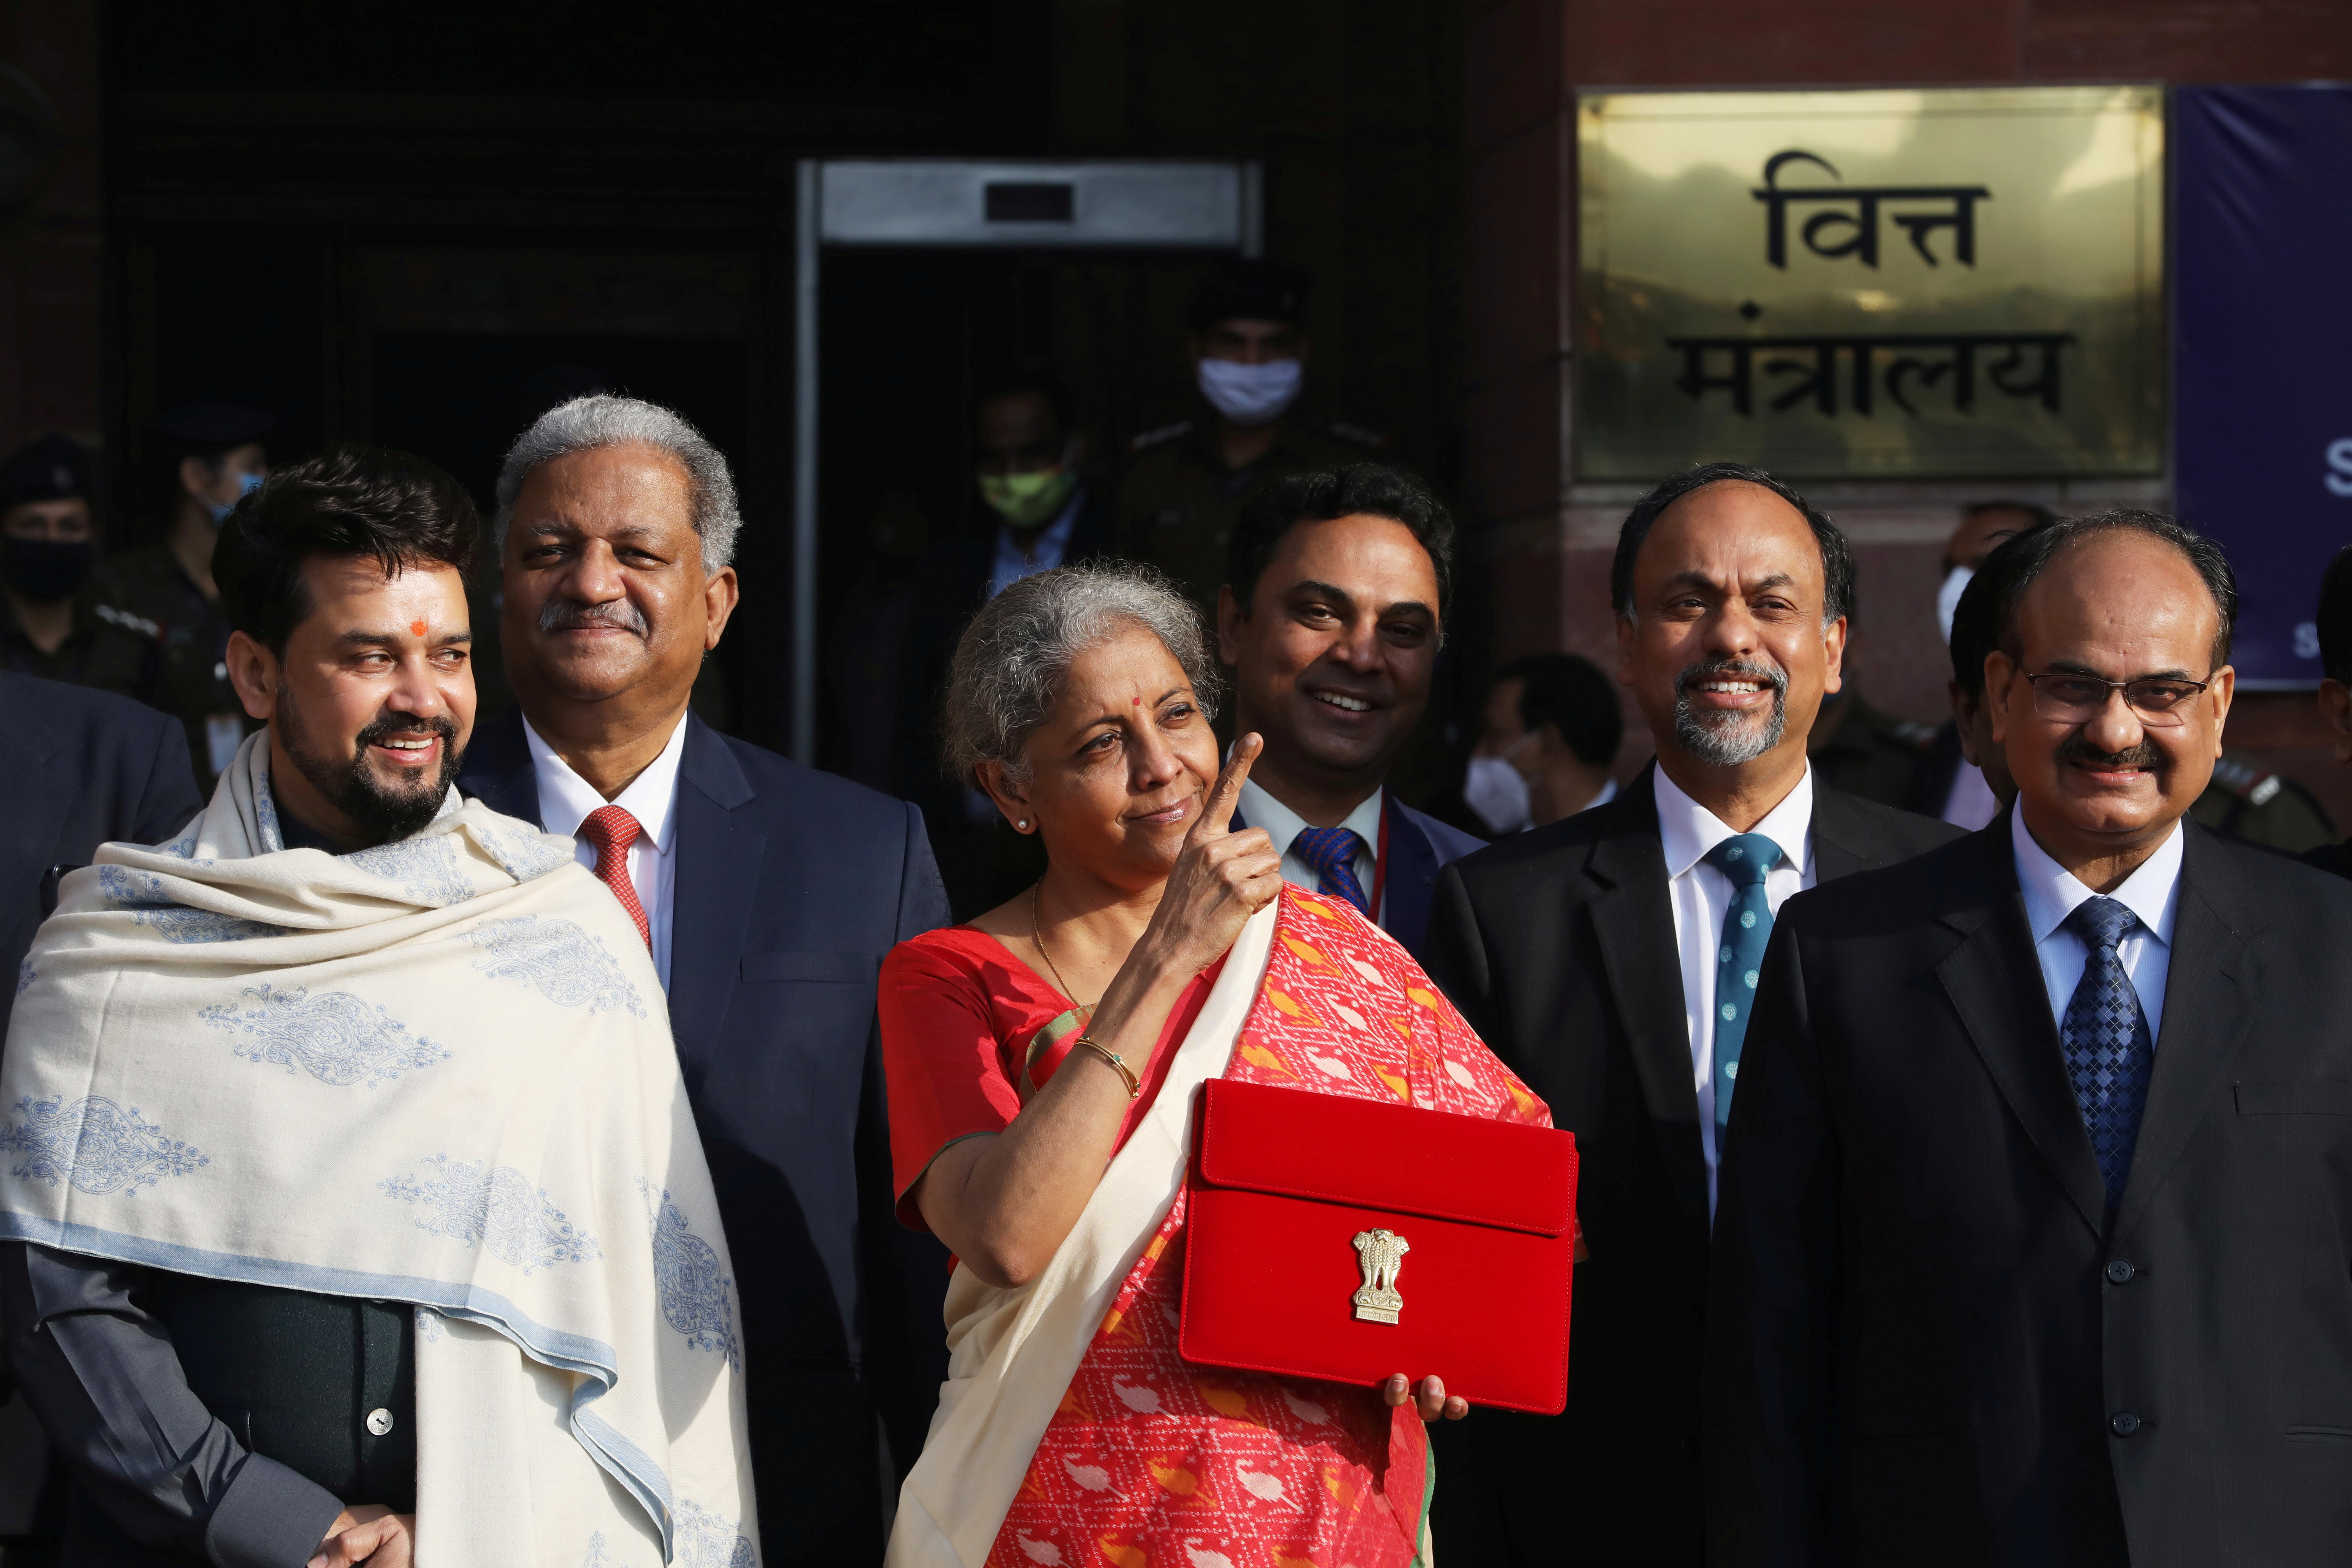 India's Finance Minister Nirmala Sitharaman stands next to Minister of State for Finance and Corporate Affairs Anurag Thakur (L) as she leaves her office to present the federal budget in the parliament in New Delhi, India, February 1, 2021. REUTERS/Anushree Fadnavis